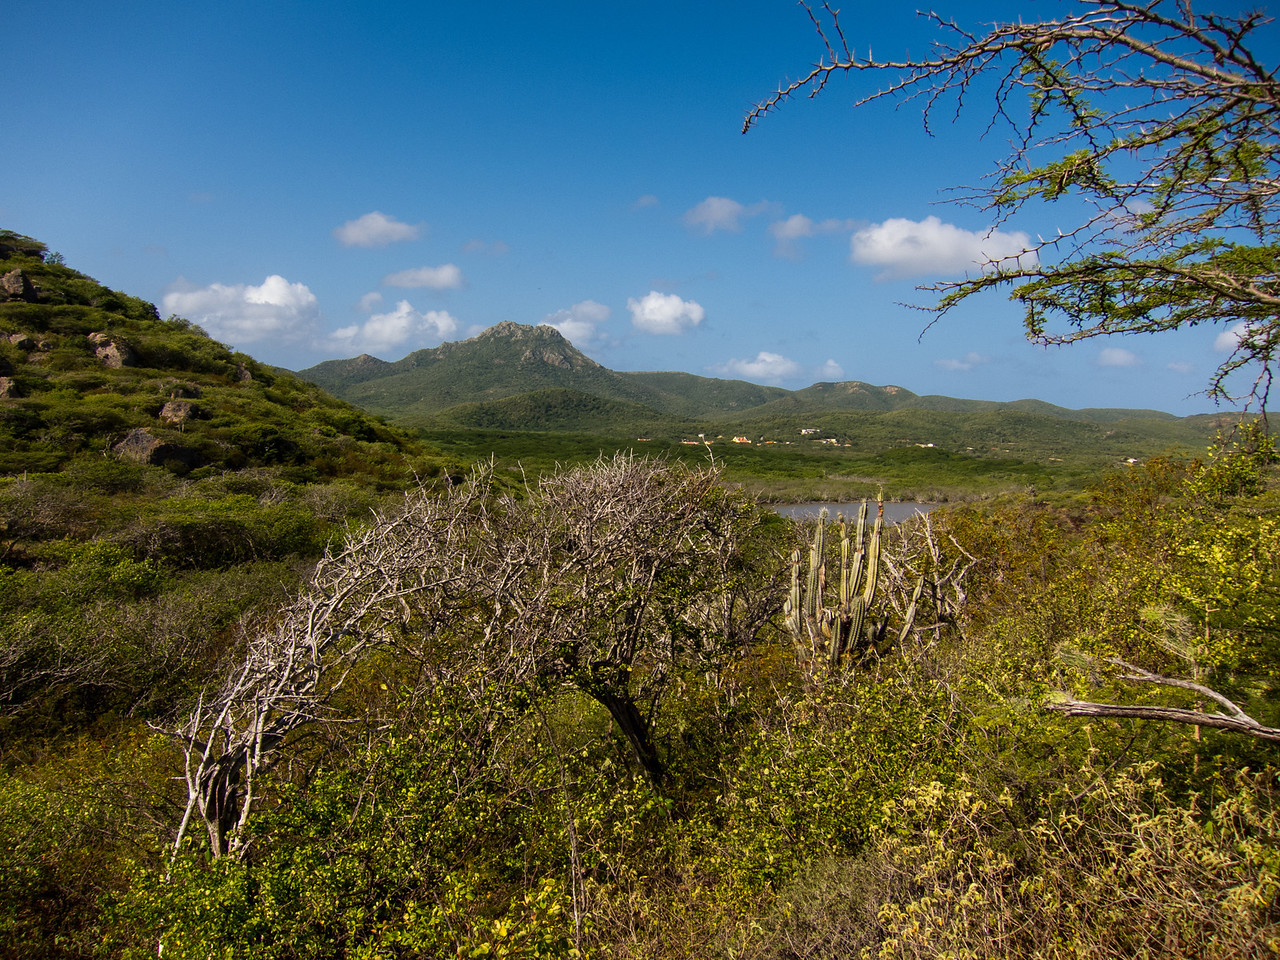 View of Mount Christoffel, Curaçao - February 2013